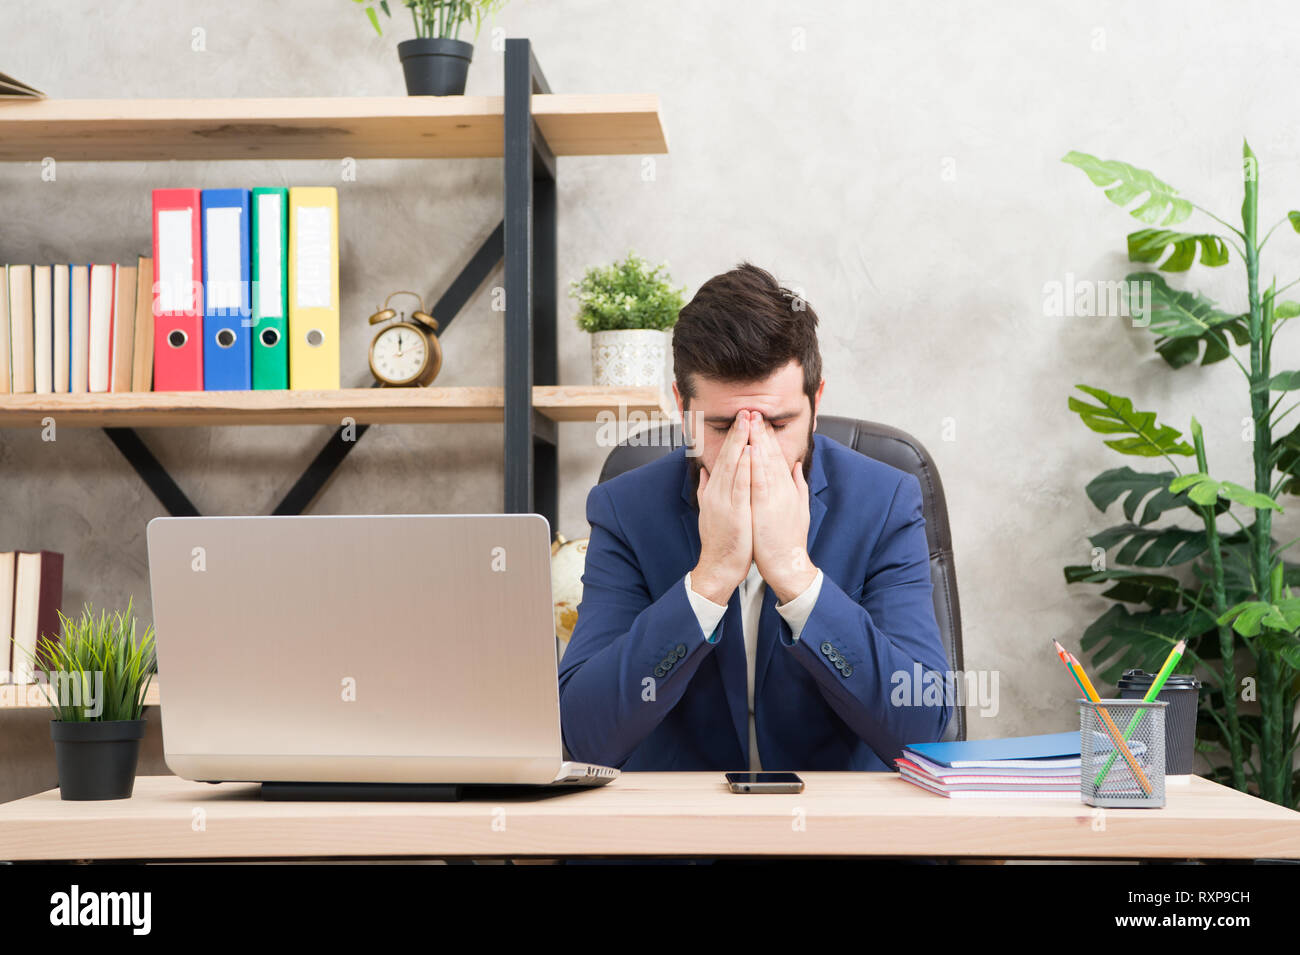 Desperate situation. Man bearded boss sit office with laptop. Manager solving business problems. Businessman in charge of successful business solutions. Developing business strategy. Risky business. - Stock Image